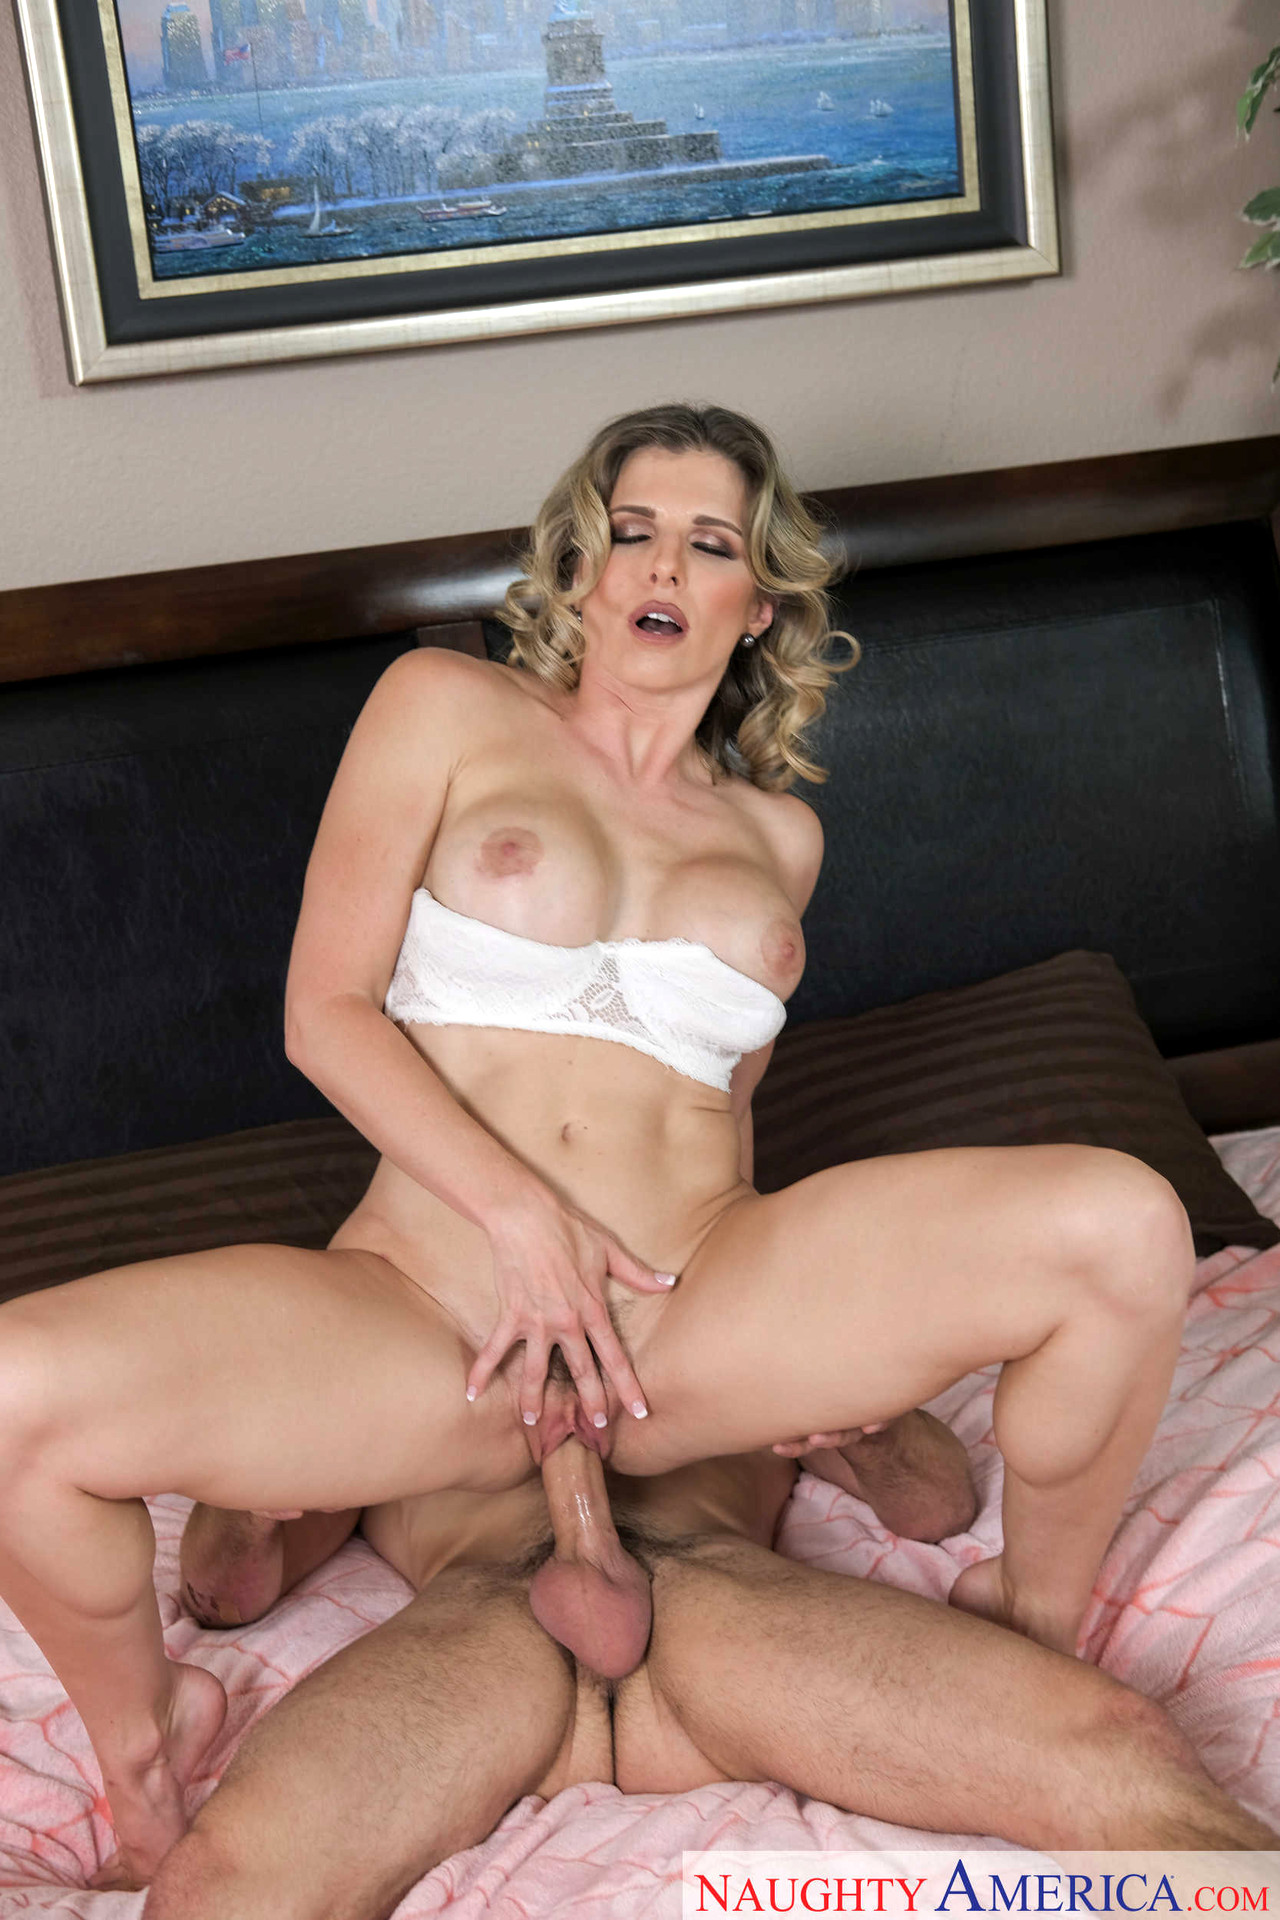 Naughty America Cory Chase Mystery Store bryster Billeder Sex Hd Pics-5022